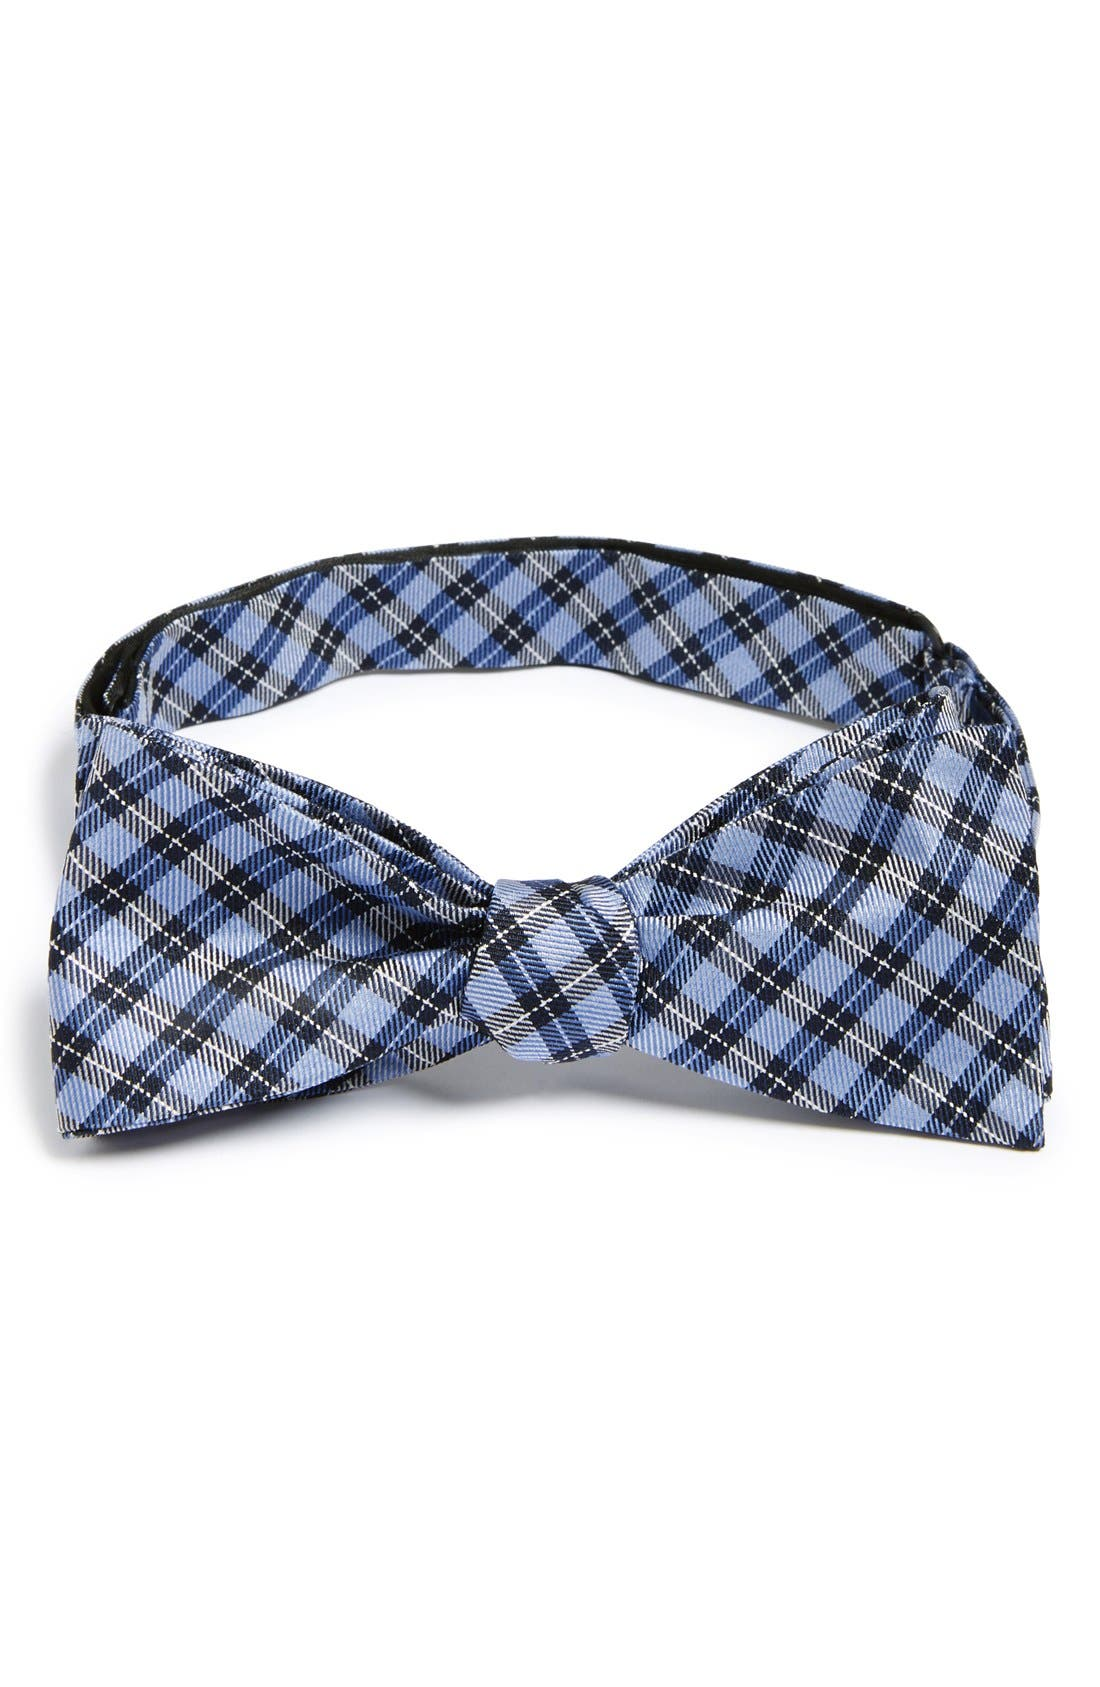 'Choi' Check Silk Bow Tie,                         Main,                         color, Blue